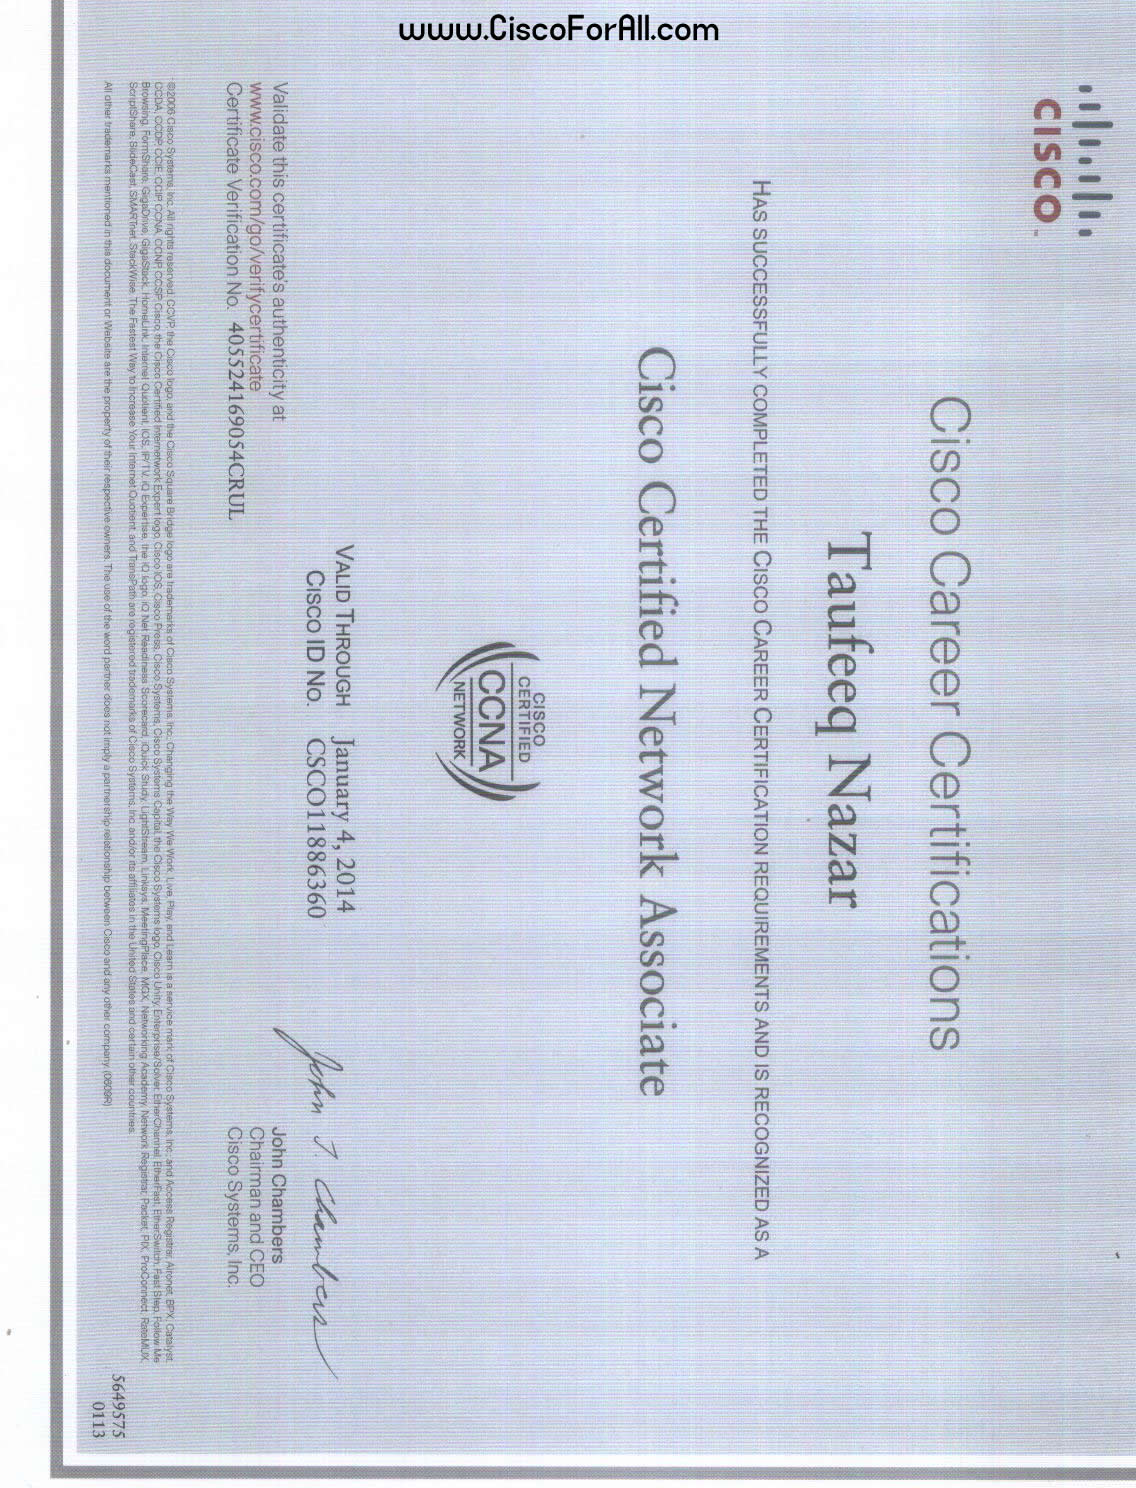 ccna certification passing receive marks 1000